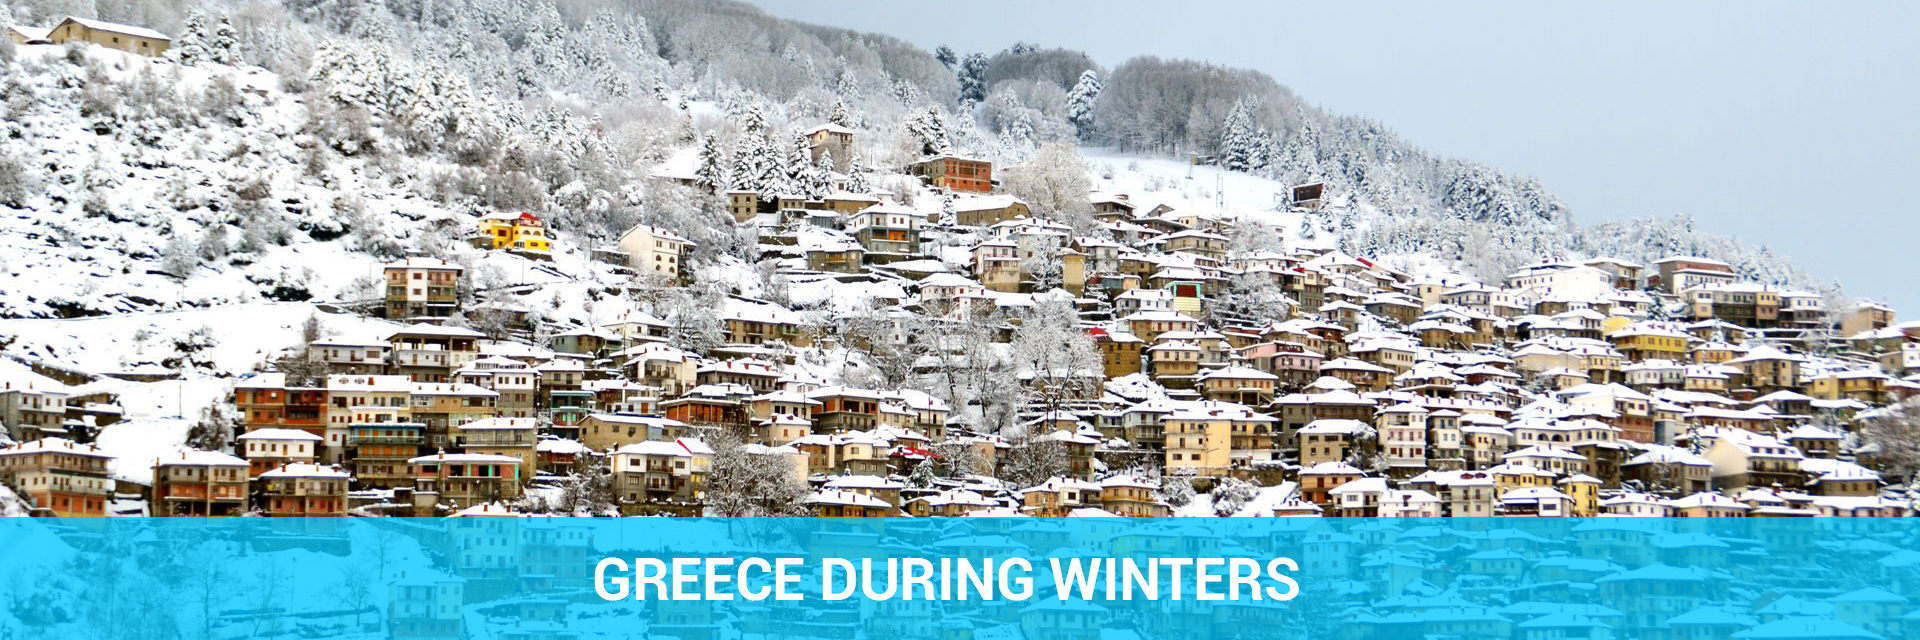 greece during winters